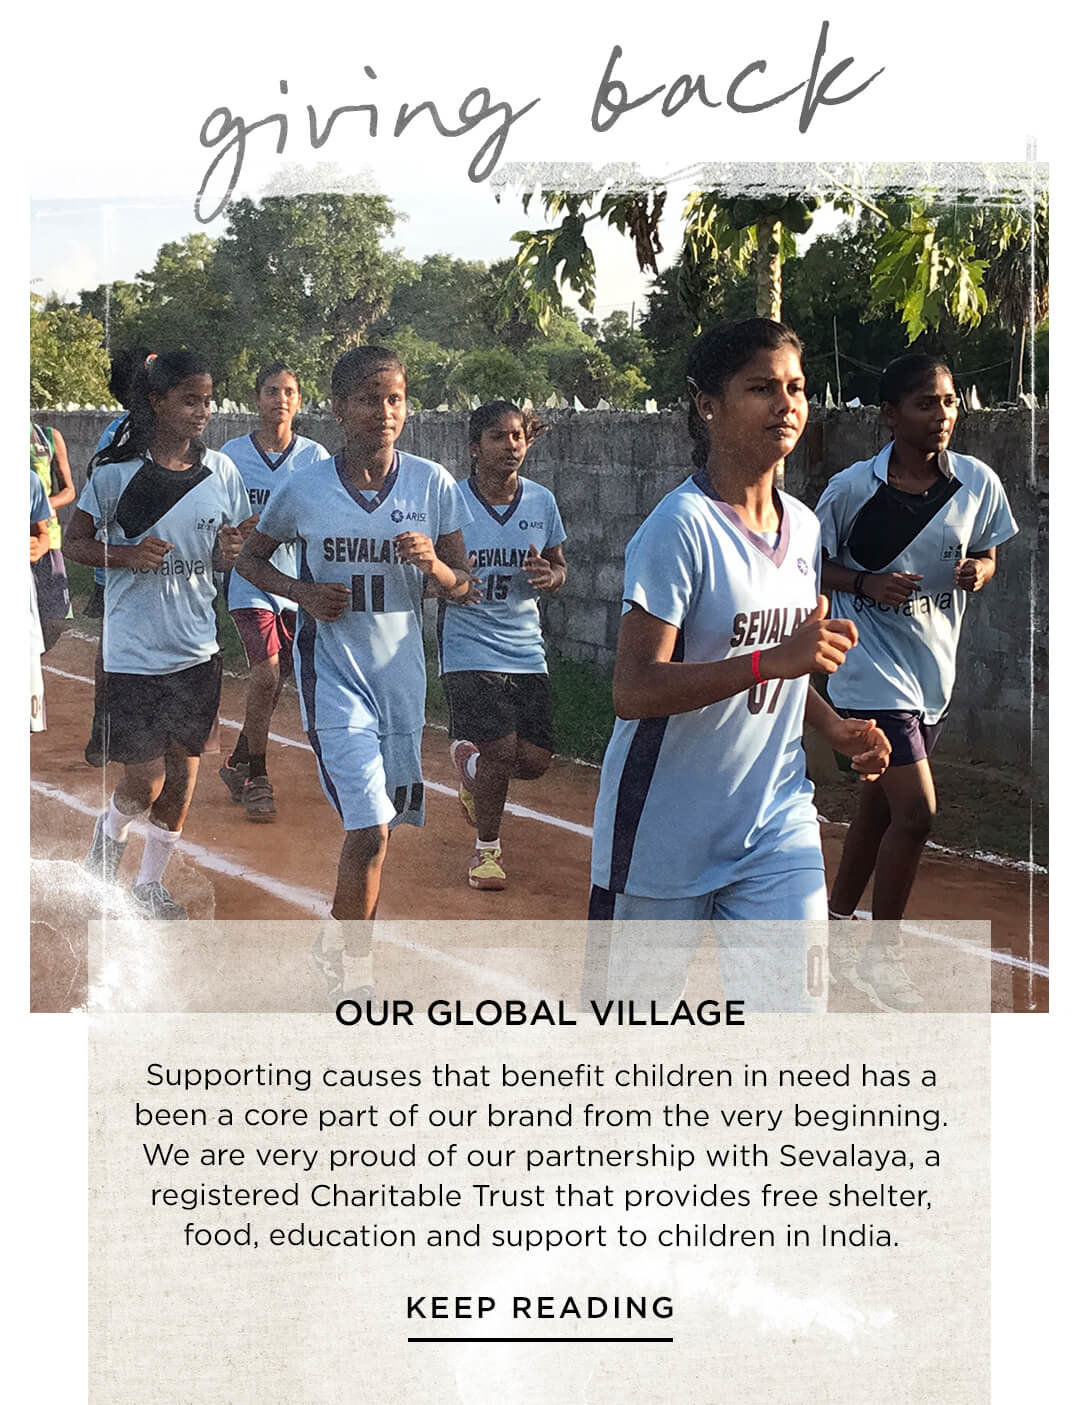 Our global village: We are very proud of our partnership with Sevalaya, a registered Charitable Trust that provides free shelter, food, education and support to children in India.